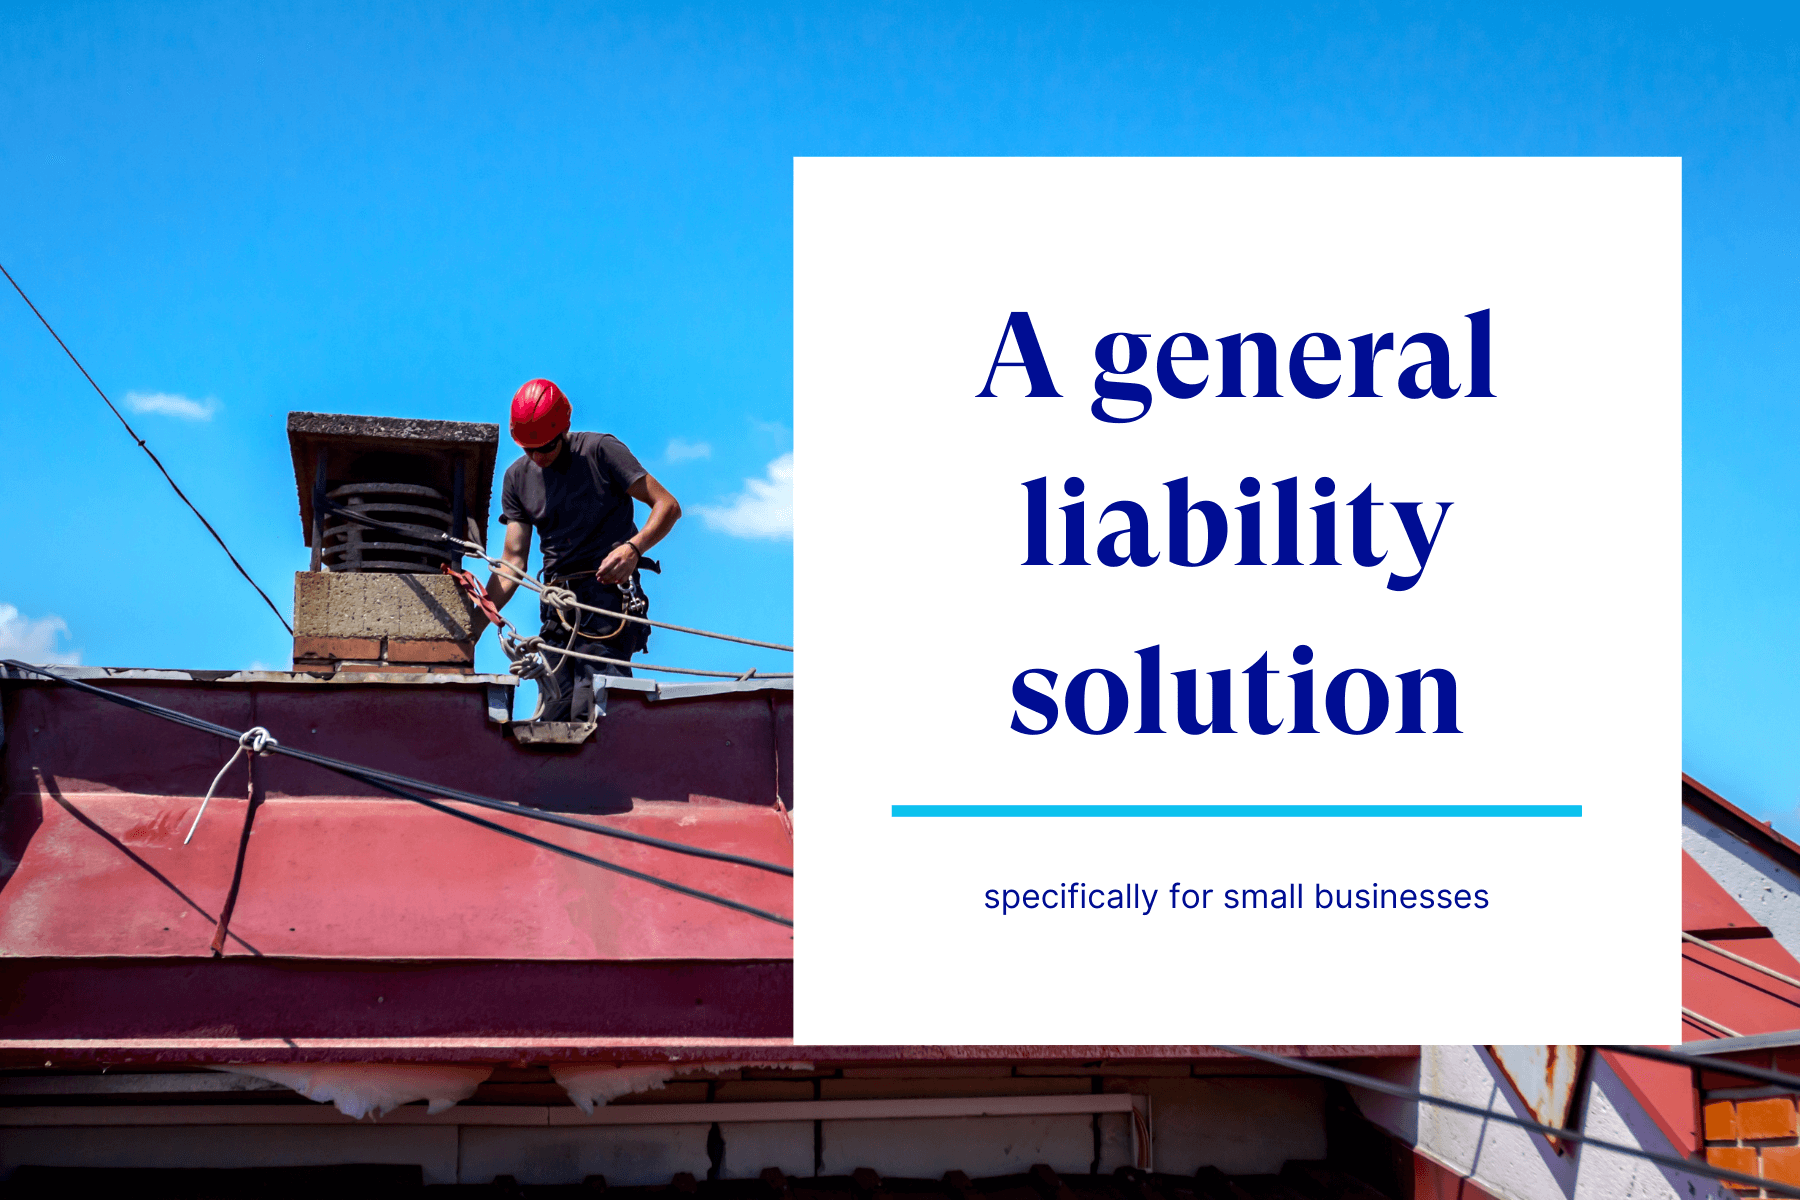 A General Liability solution specifically for small businesses